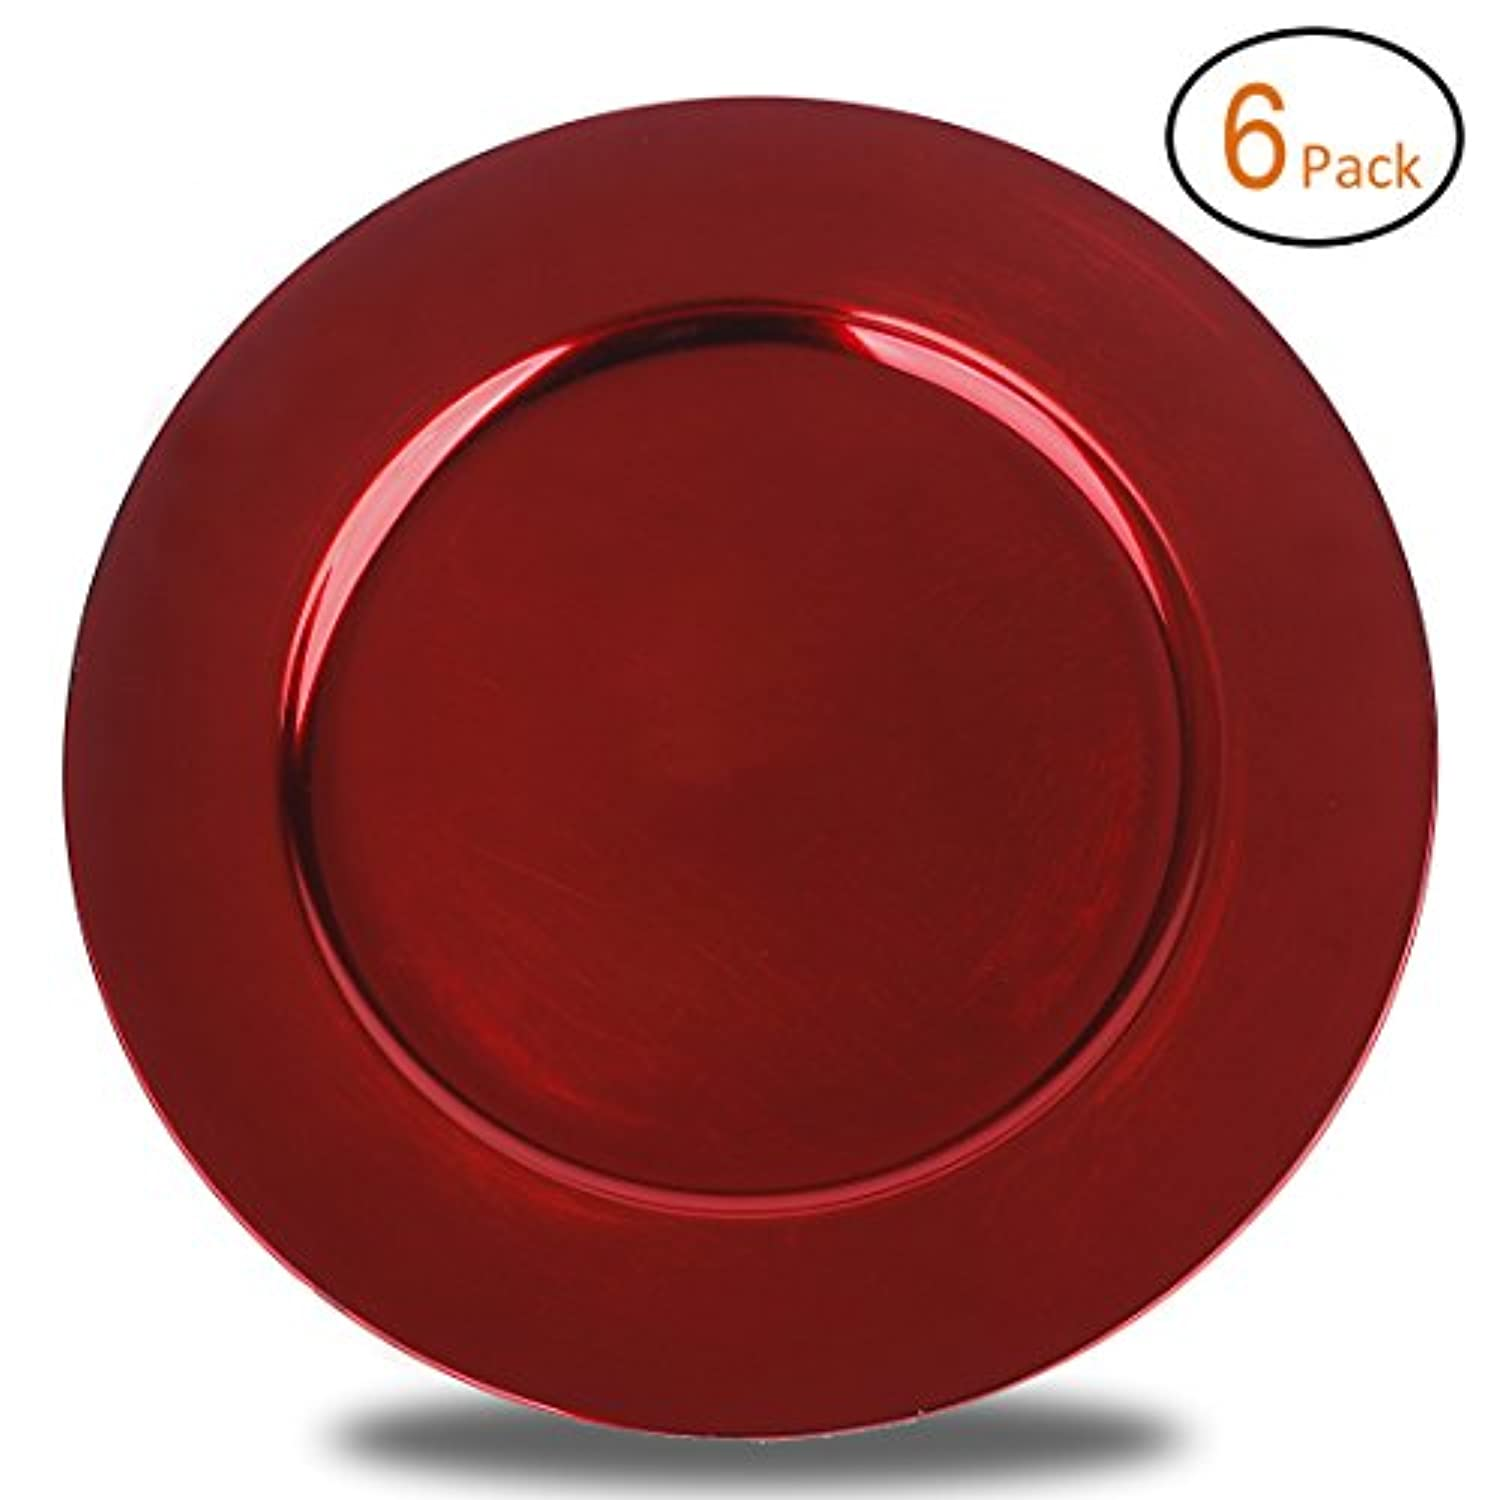 Fantastic:)?6pcs/Set Classic Design Round 13x13 Charger Plates with Metallic Finish (Set of 6, Plain Red) by Fantastic:)